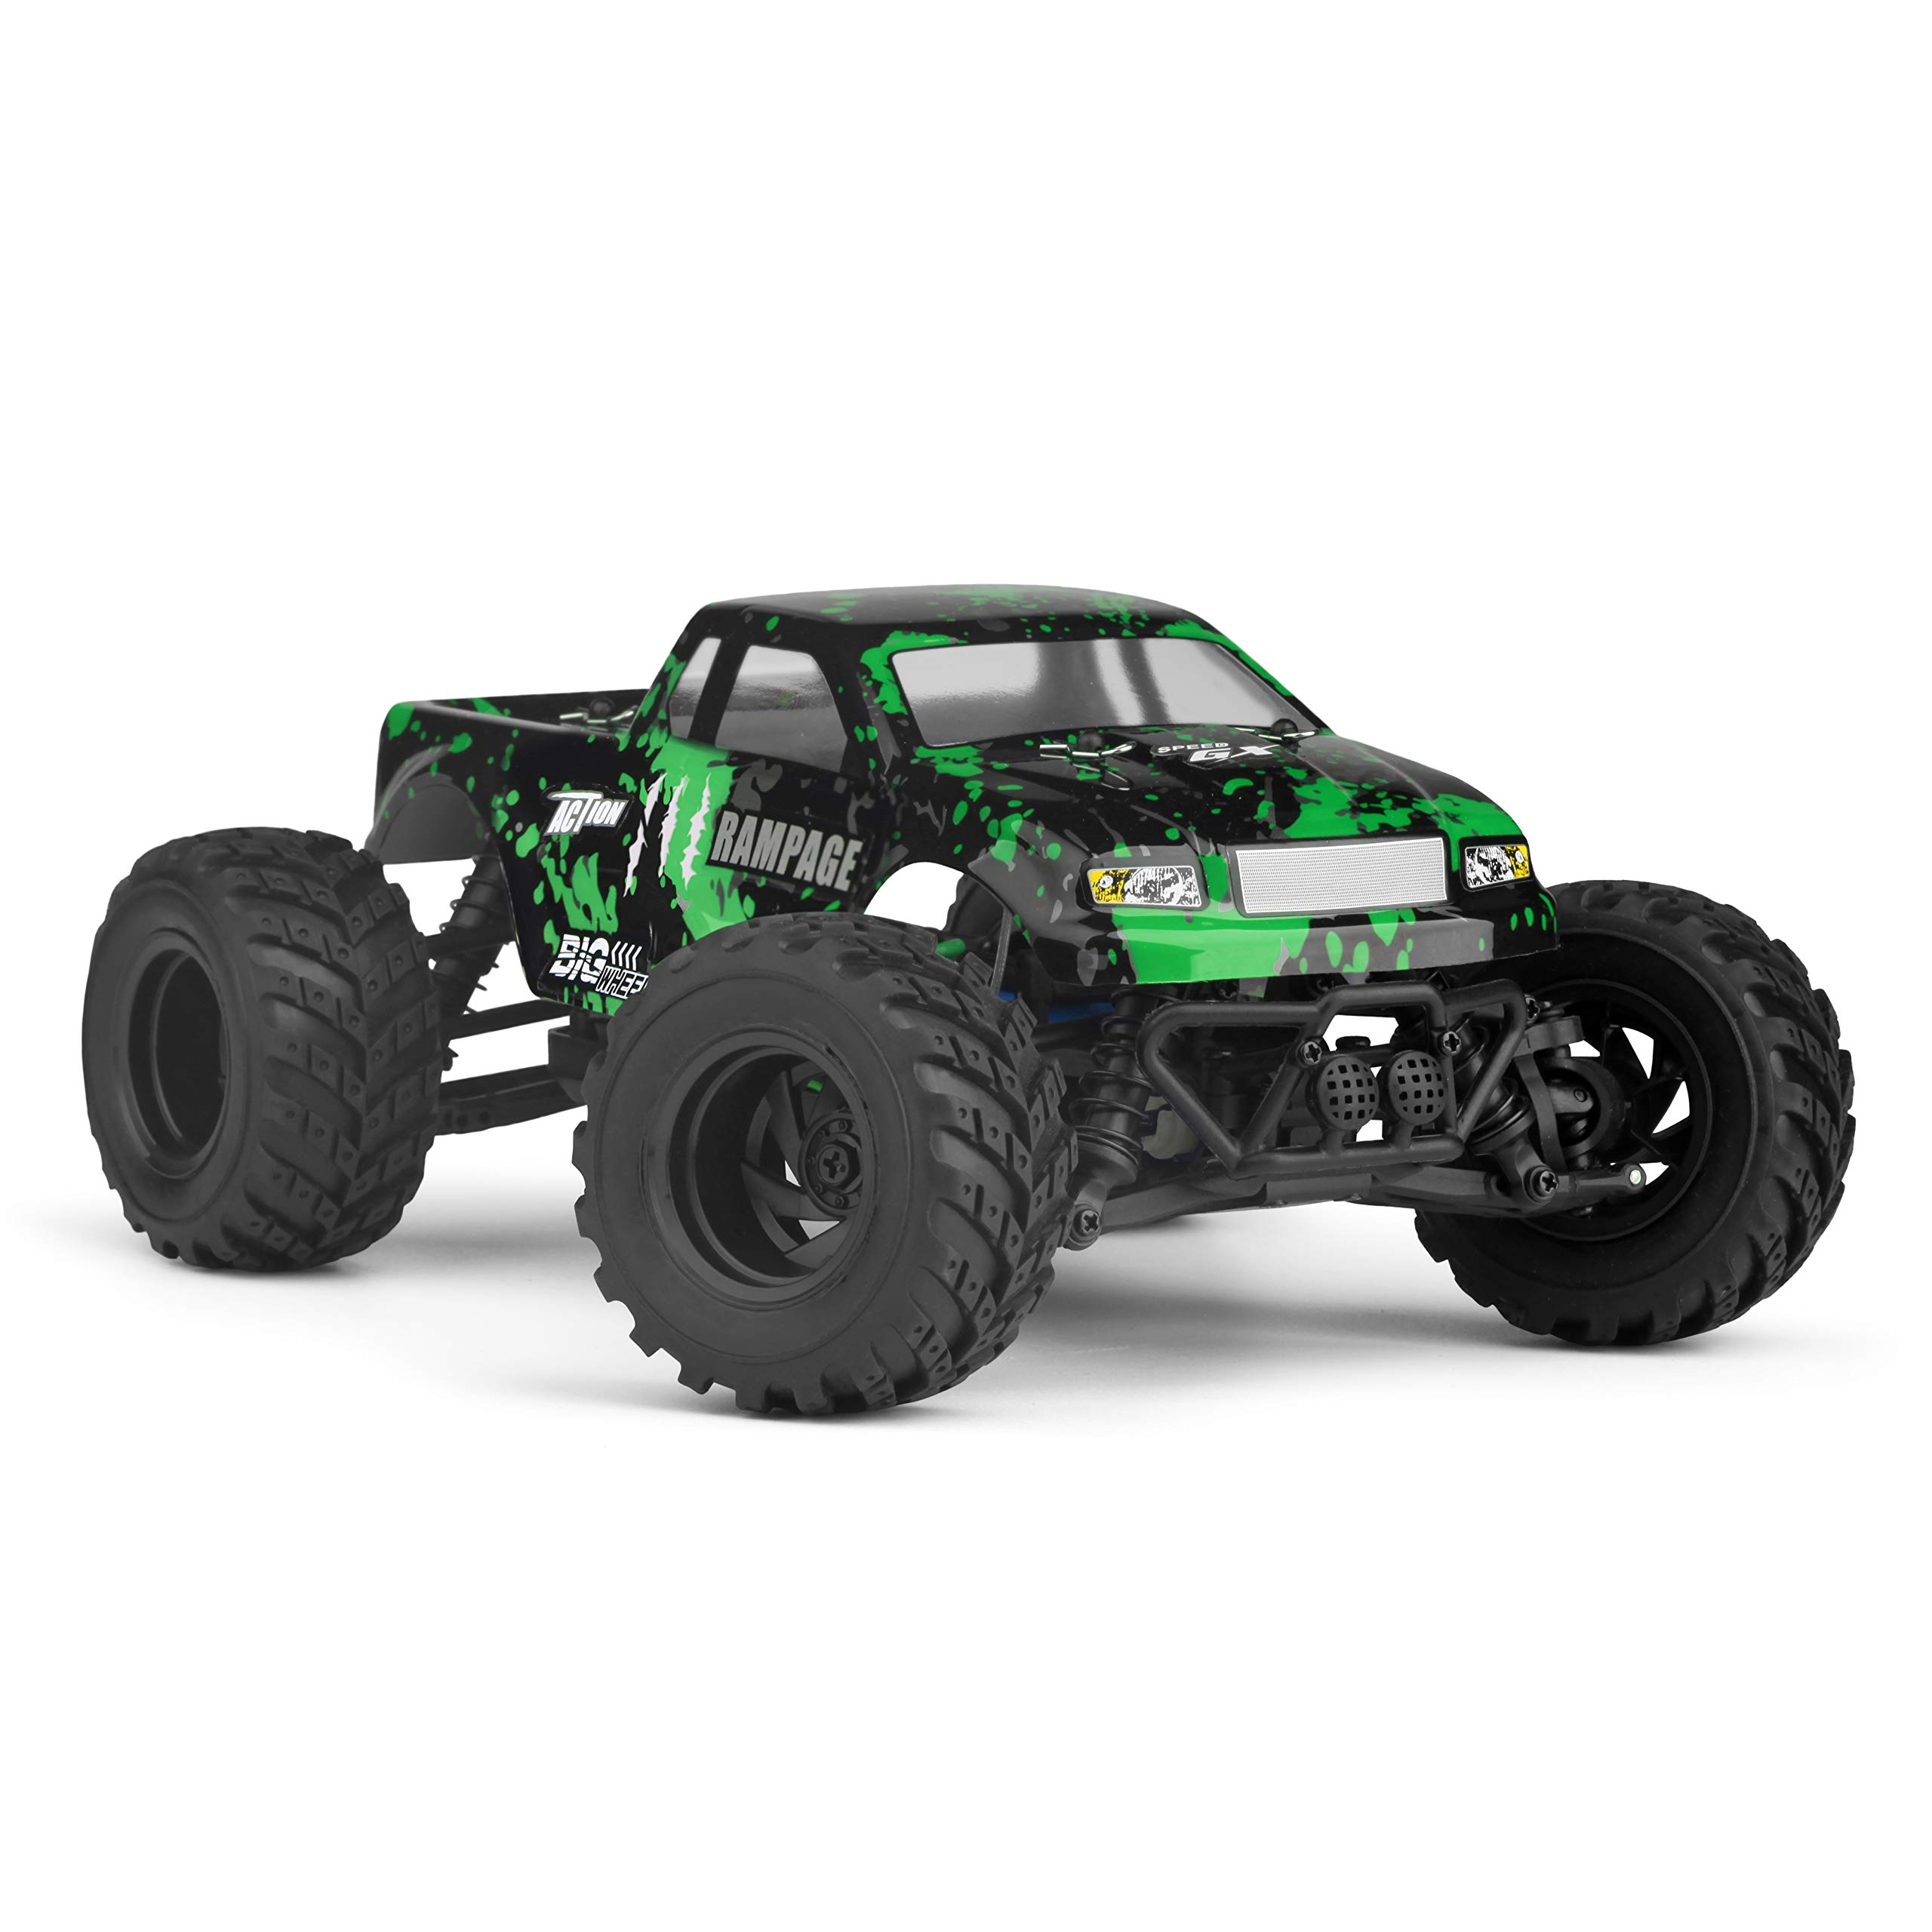 HBX 1:18 Scale All Terrain RC Car 18859E, 30+MPH High Speed 4WD Electric Vehicle with 2.4 GHz Radio Controller, Waterproof Off-Road Truck Included Battery and Charger by BBM HOBBY (Image #5)